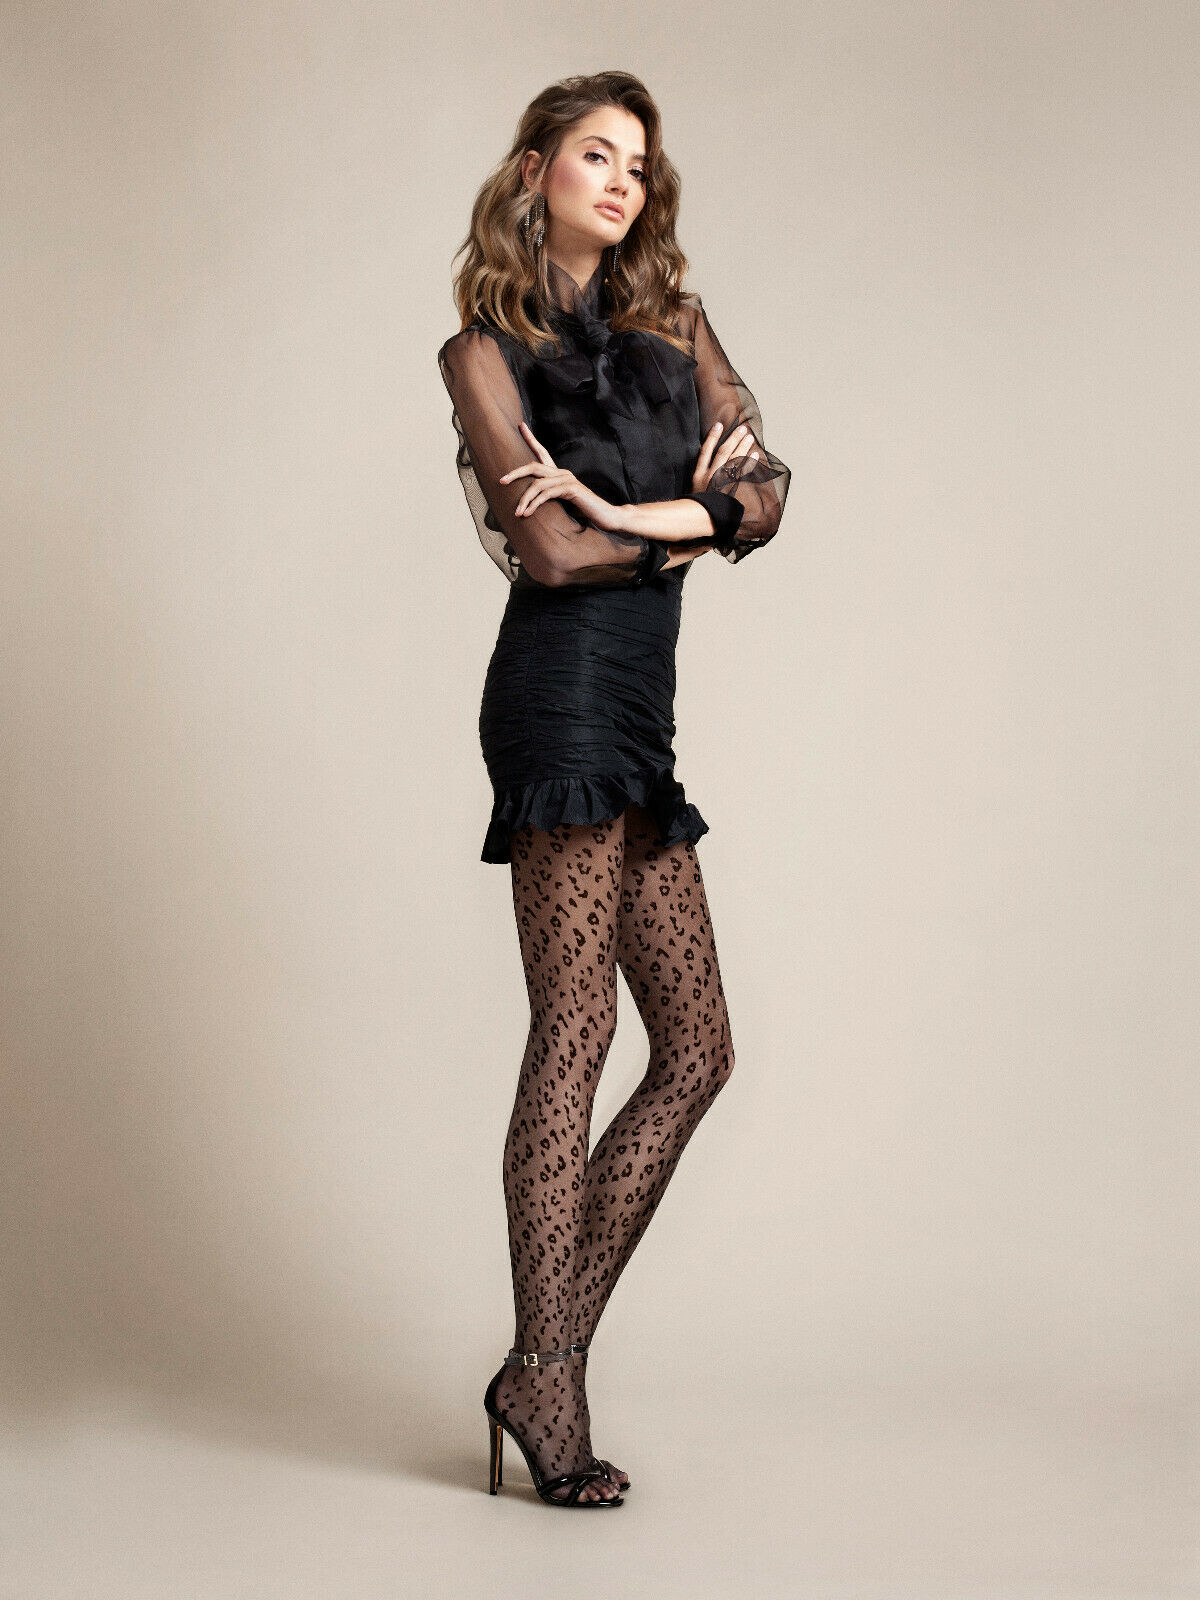 Fiore Claudia Black Leopard Tights